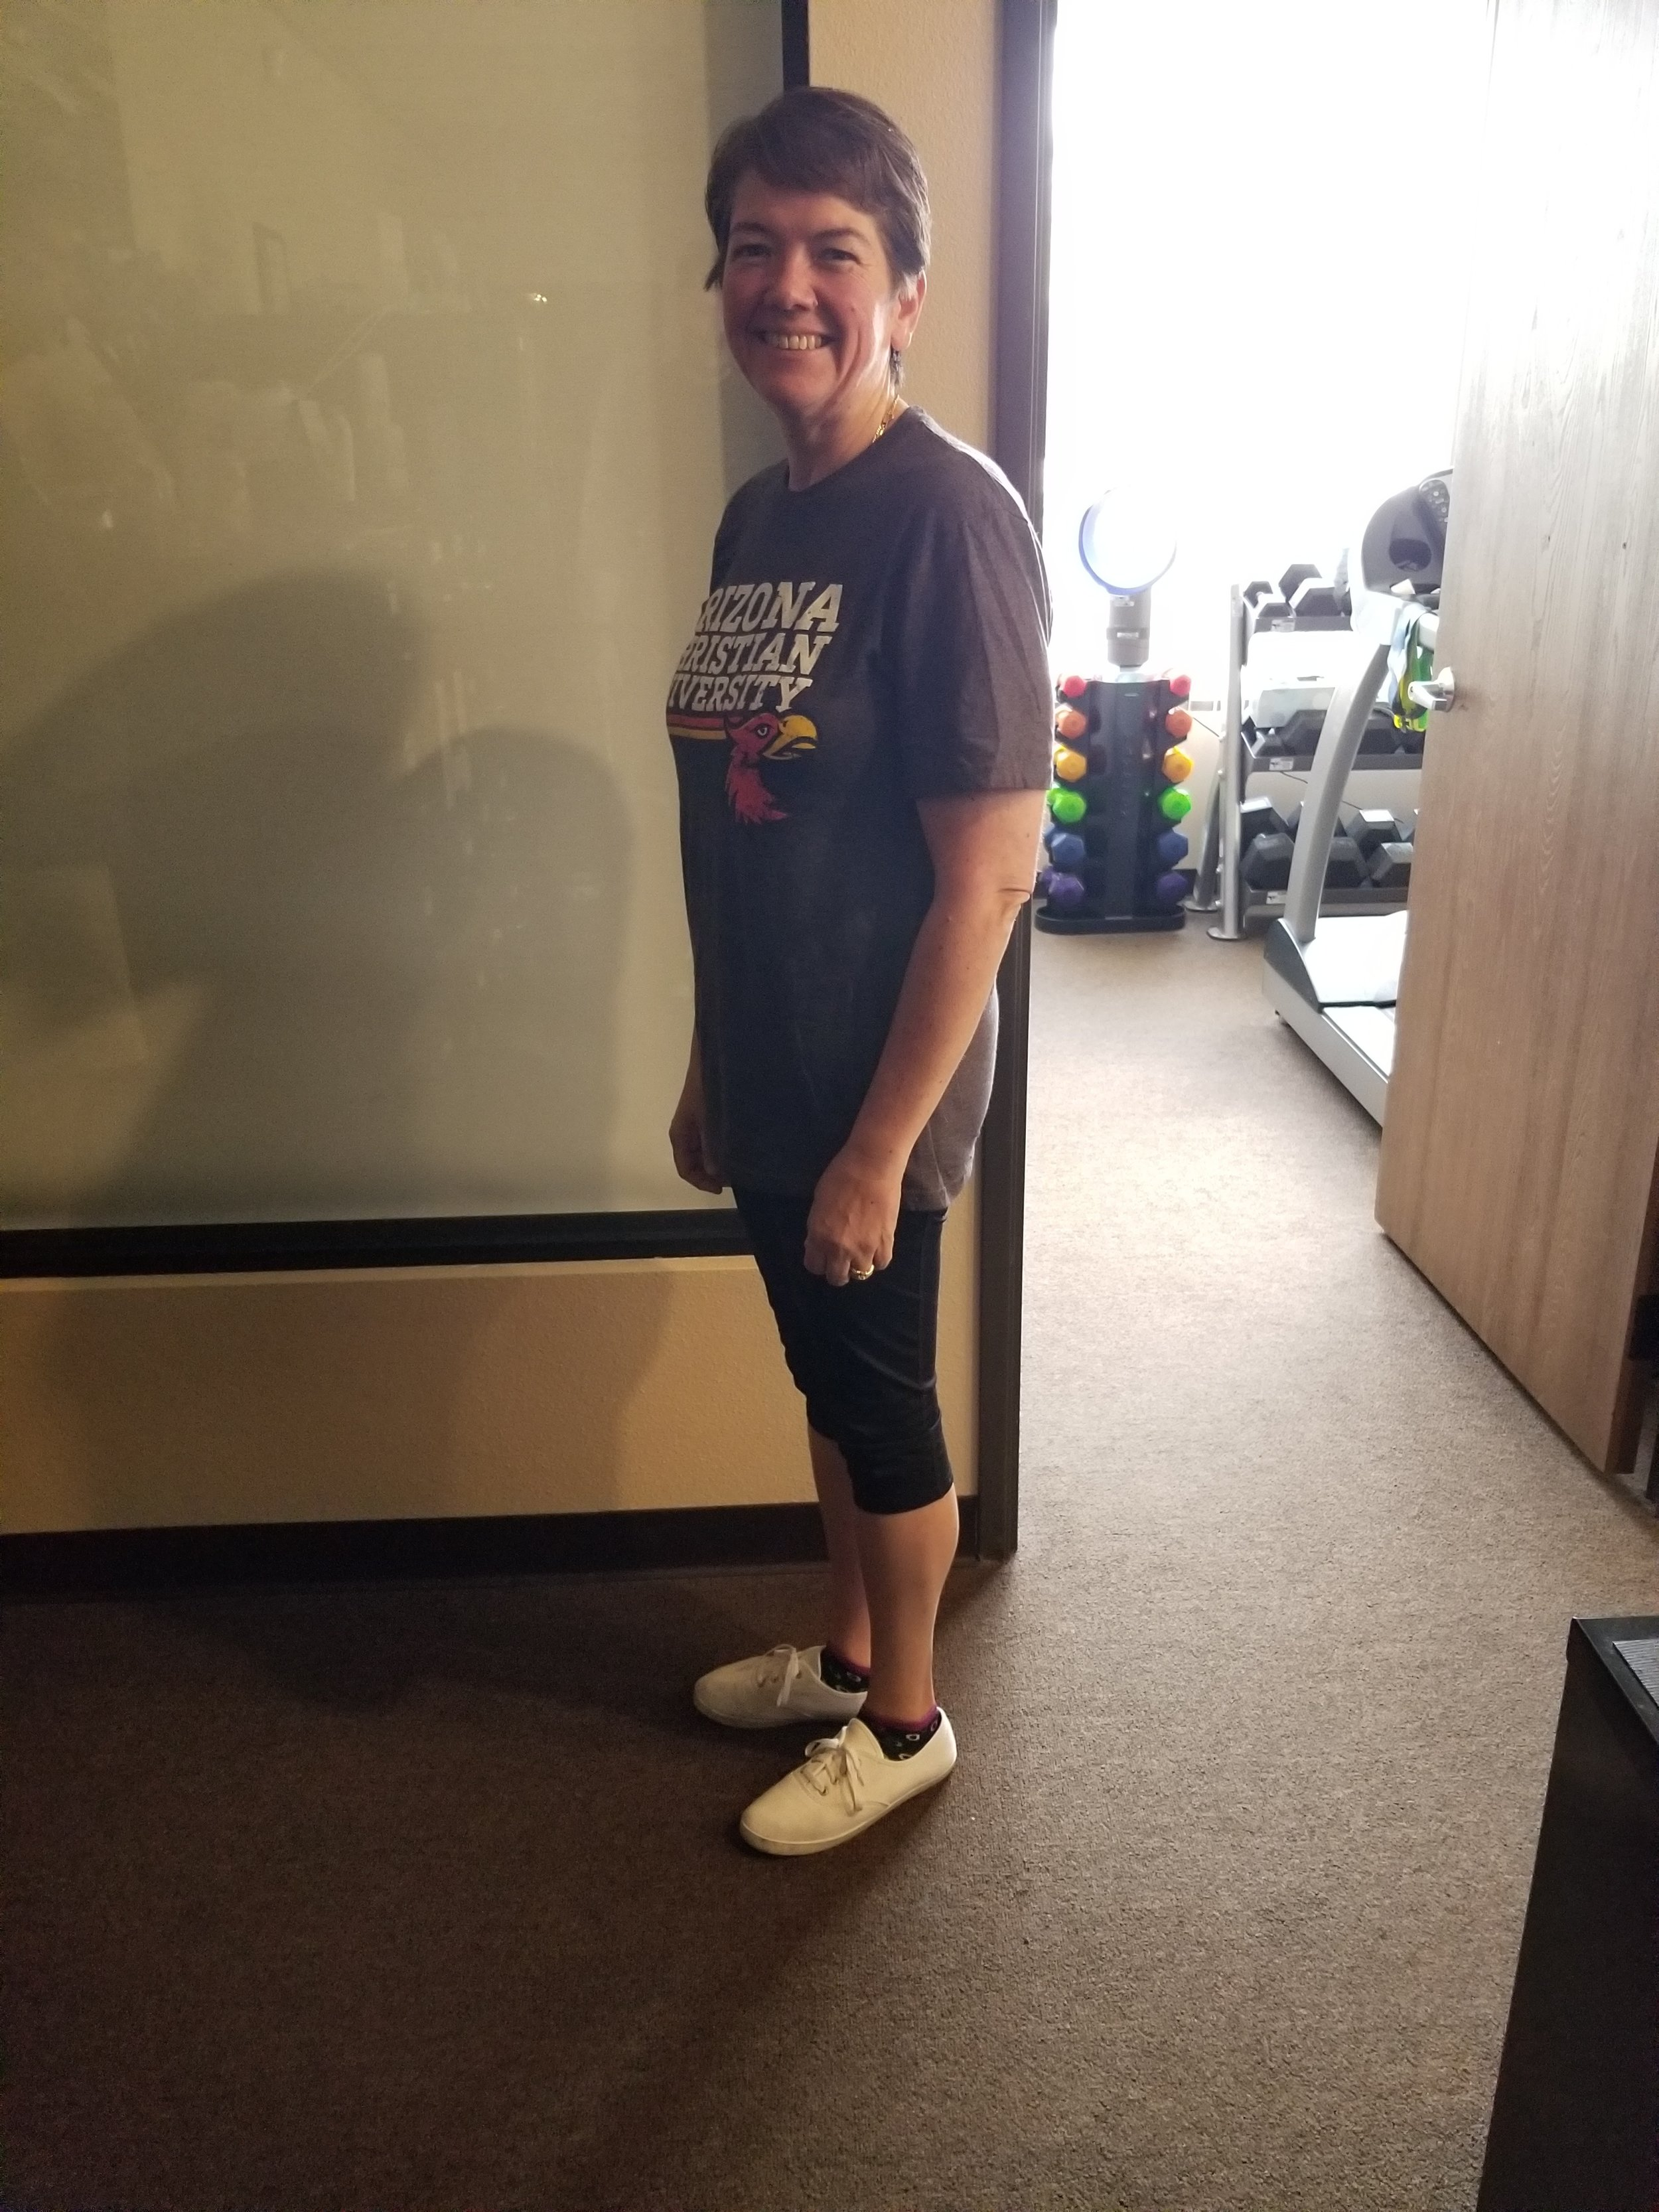 Lost: 83 lbs